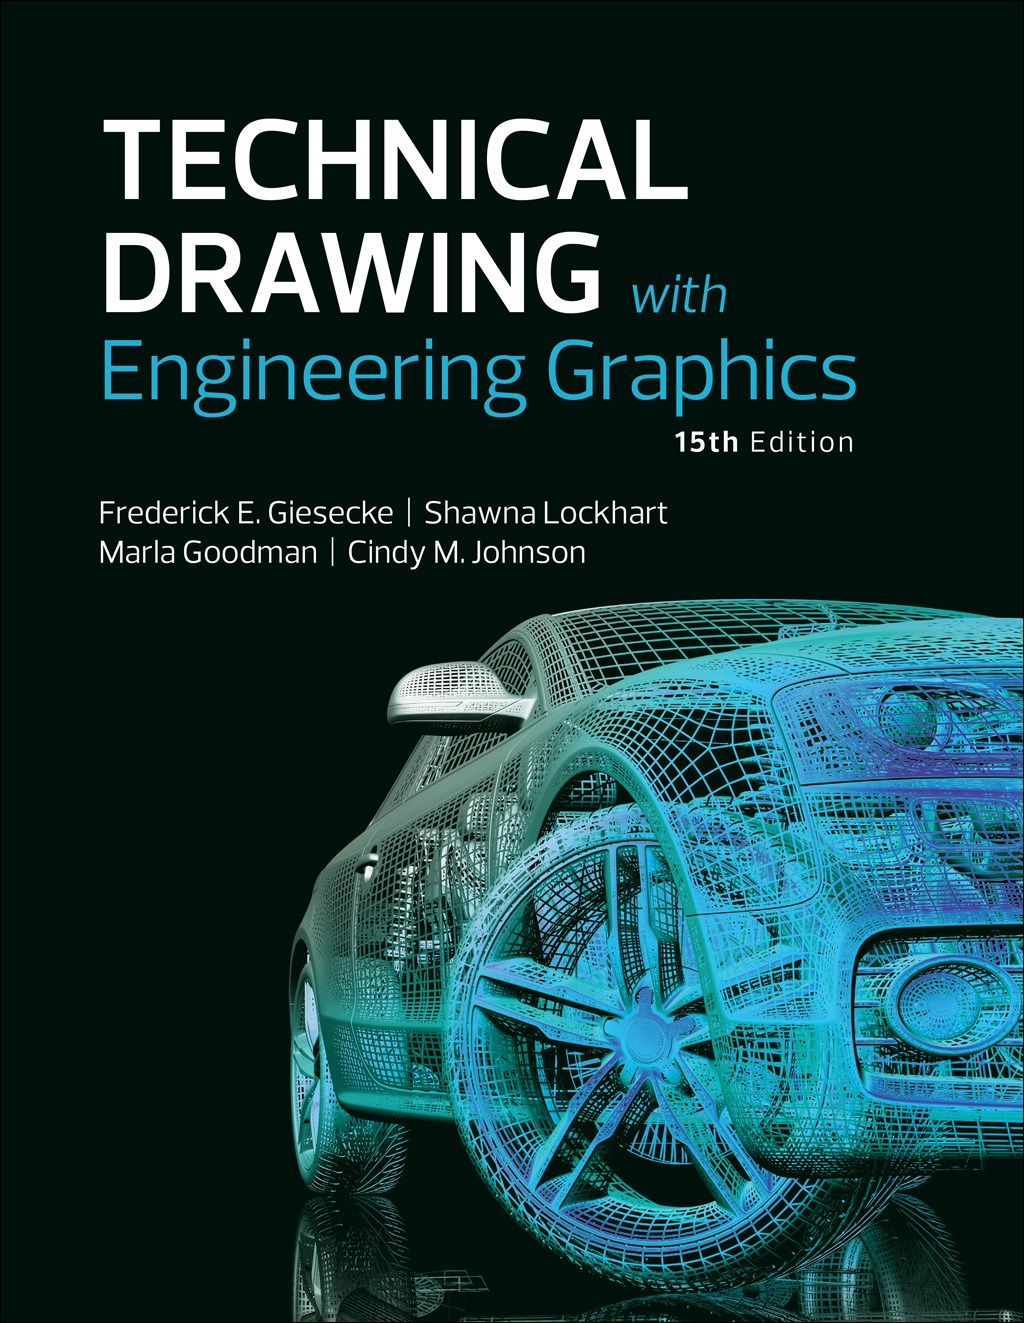 Technical Drawing with Engineering Graphics, 15th Edition